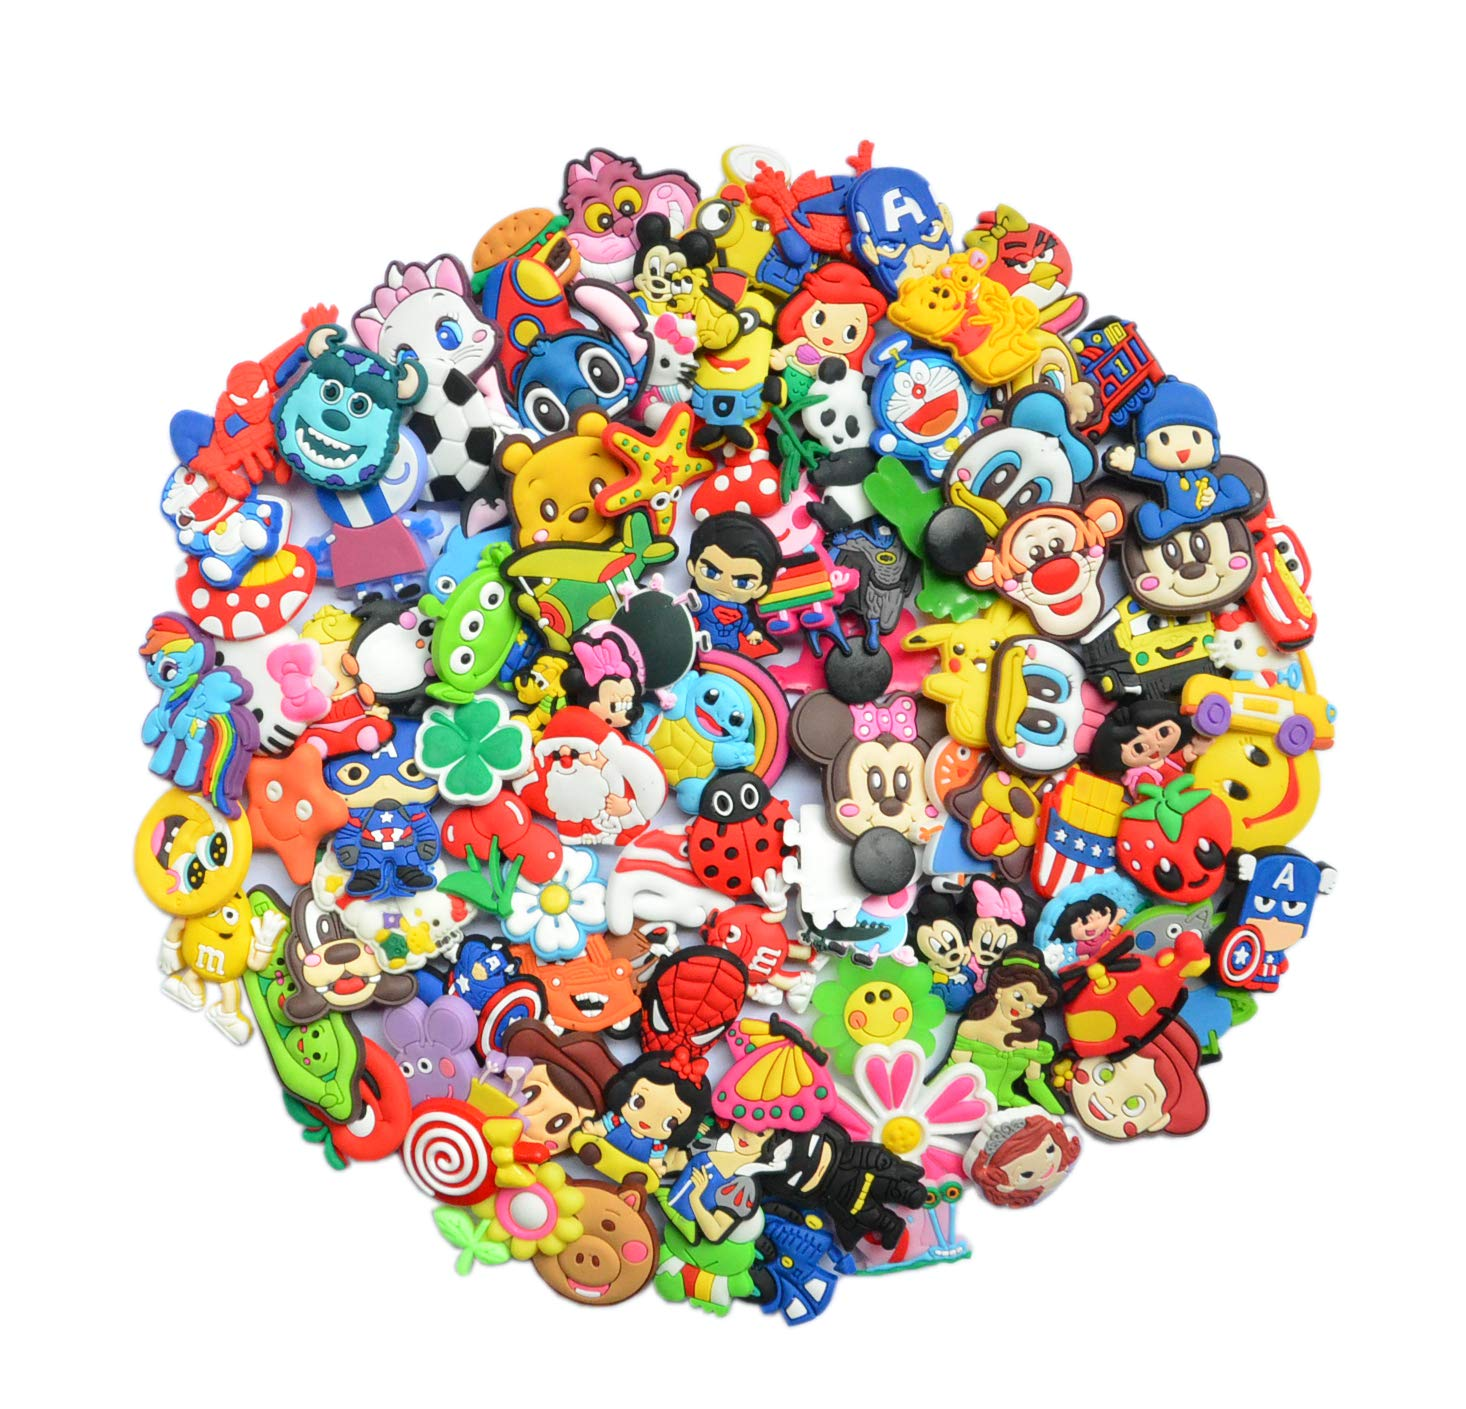 6e4b38efdc036 Amazon.com: YAOYAO Different 100 Pcs PVC Shoe Charms for Croc & Jibbitz  Bands Bracelet Wristband for The Beach Camping: Sports & Outdoors